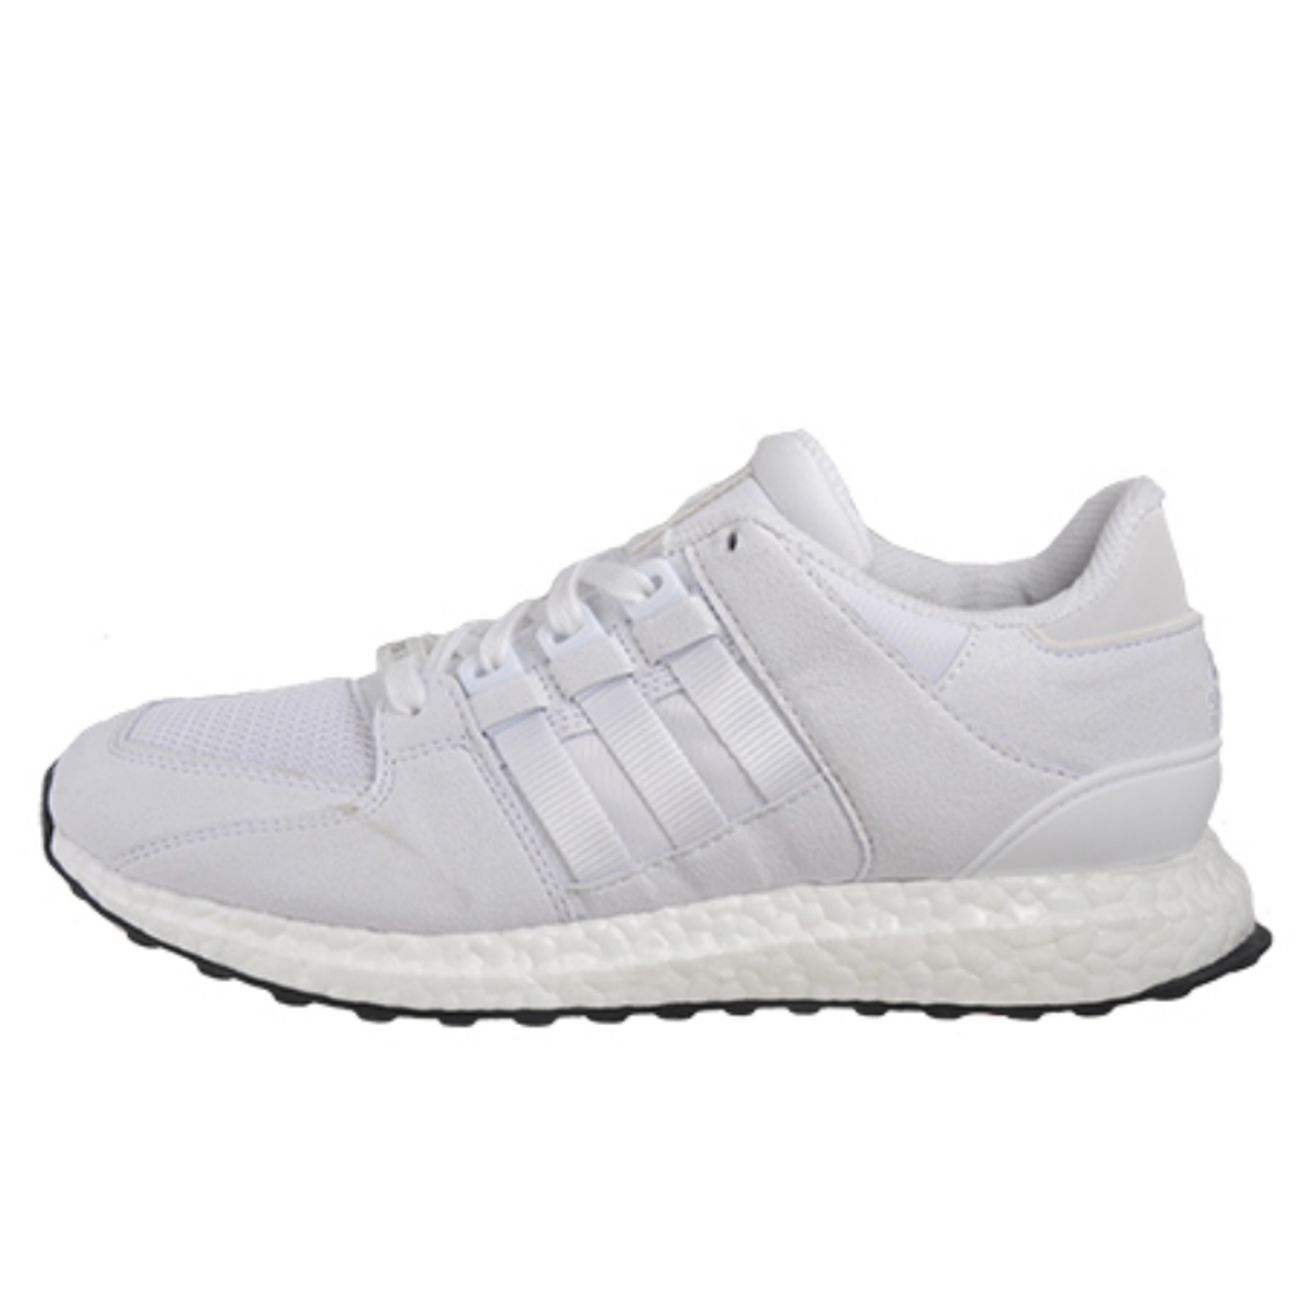 Mode- Lifestyle homme ADIDAS Adidas Originals Equipment Support Boost 93/16 Hommes Baskets Chaussures Sportives